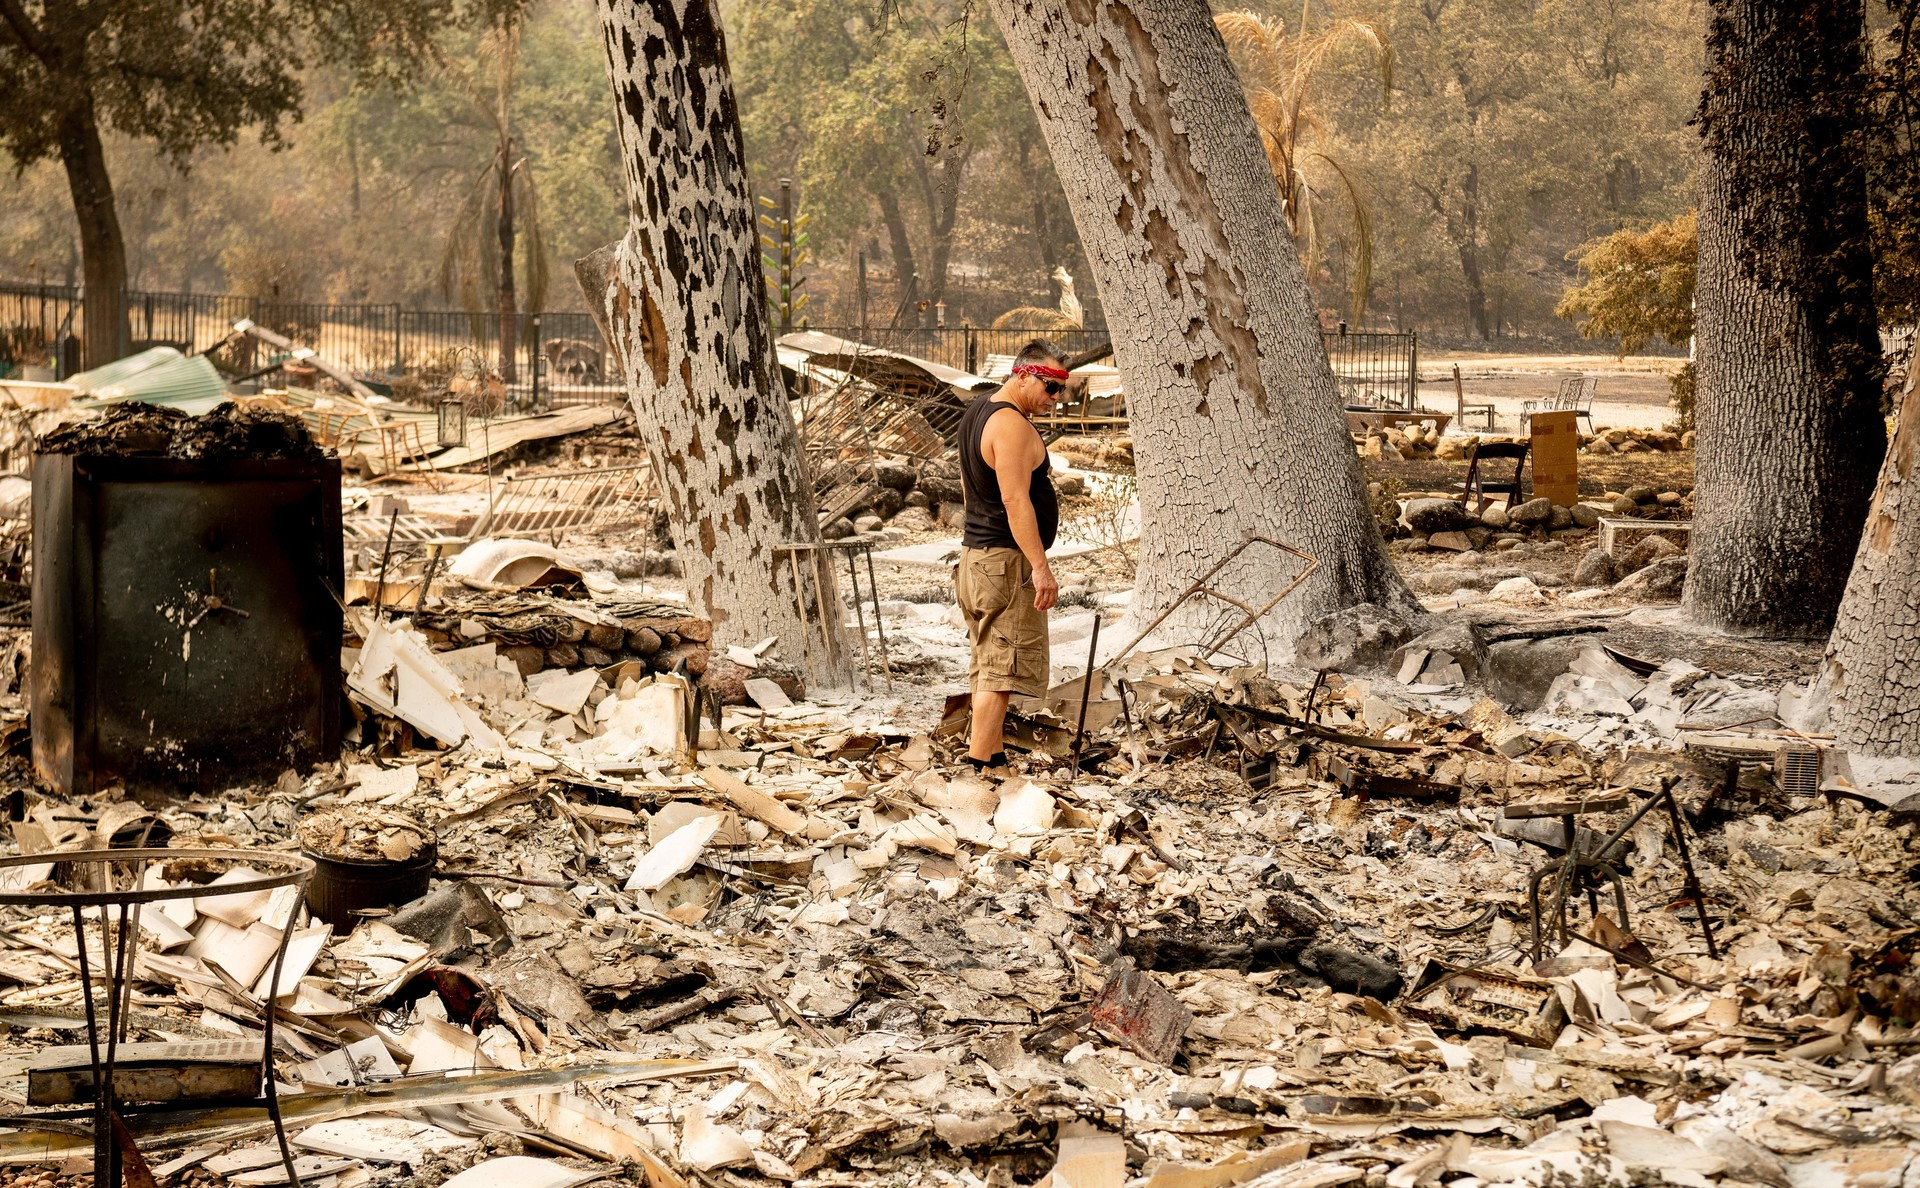 Census workers told KQED that the difficulties posed by wildfires, on top of the coronavirus pandemic, mean more enumerators are needed — not fewer — if they are to count everyone by Sept. 30